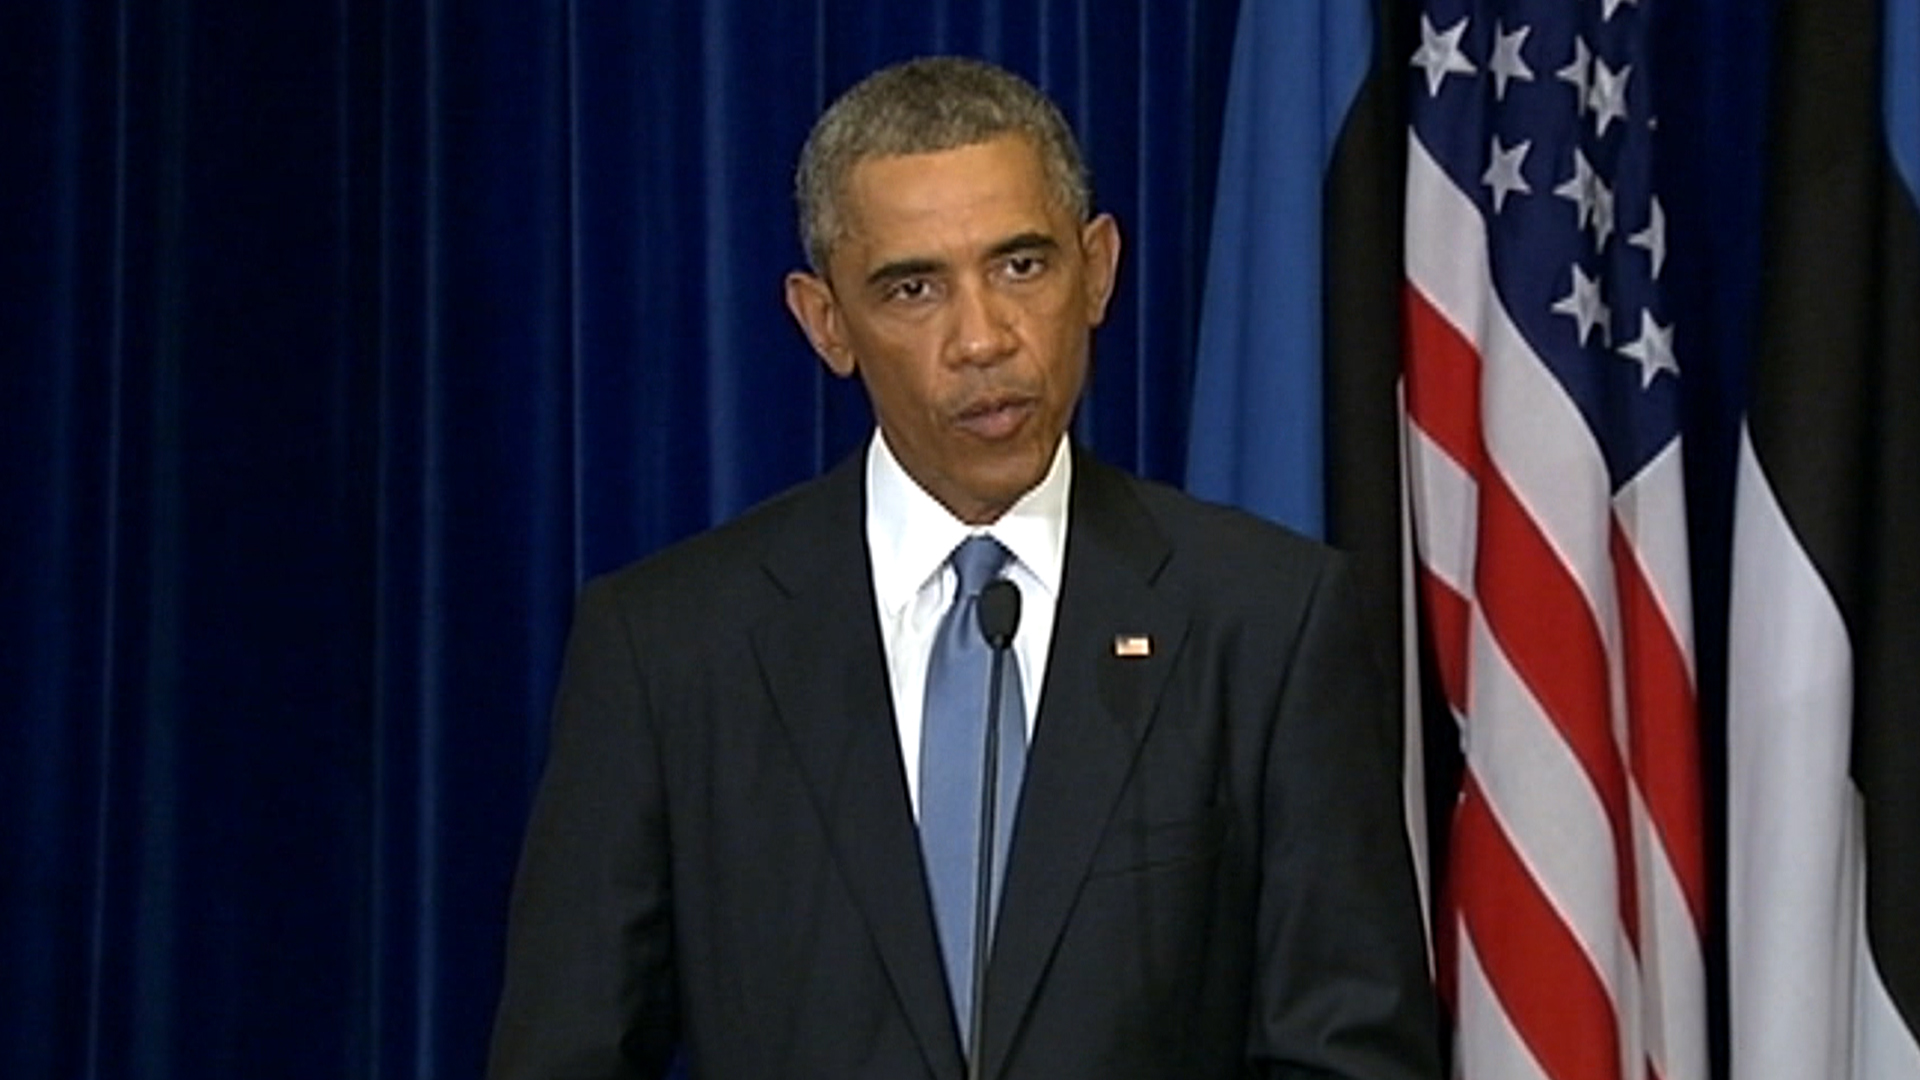 U.S. Will 'Degrade and Destroy' ISIS Militants, Obama Says